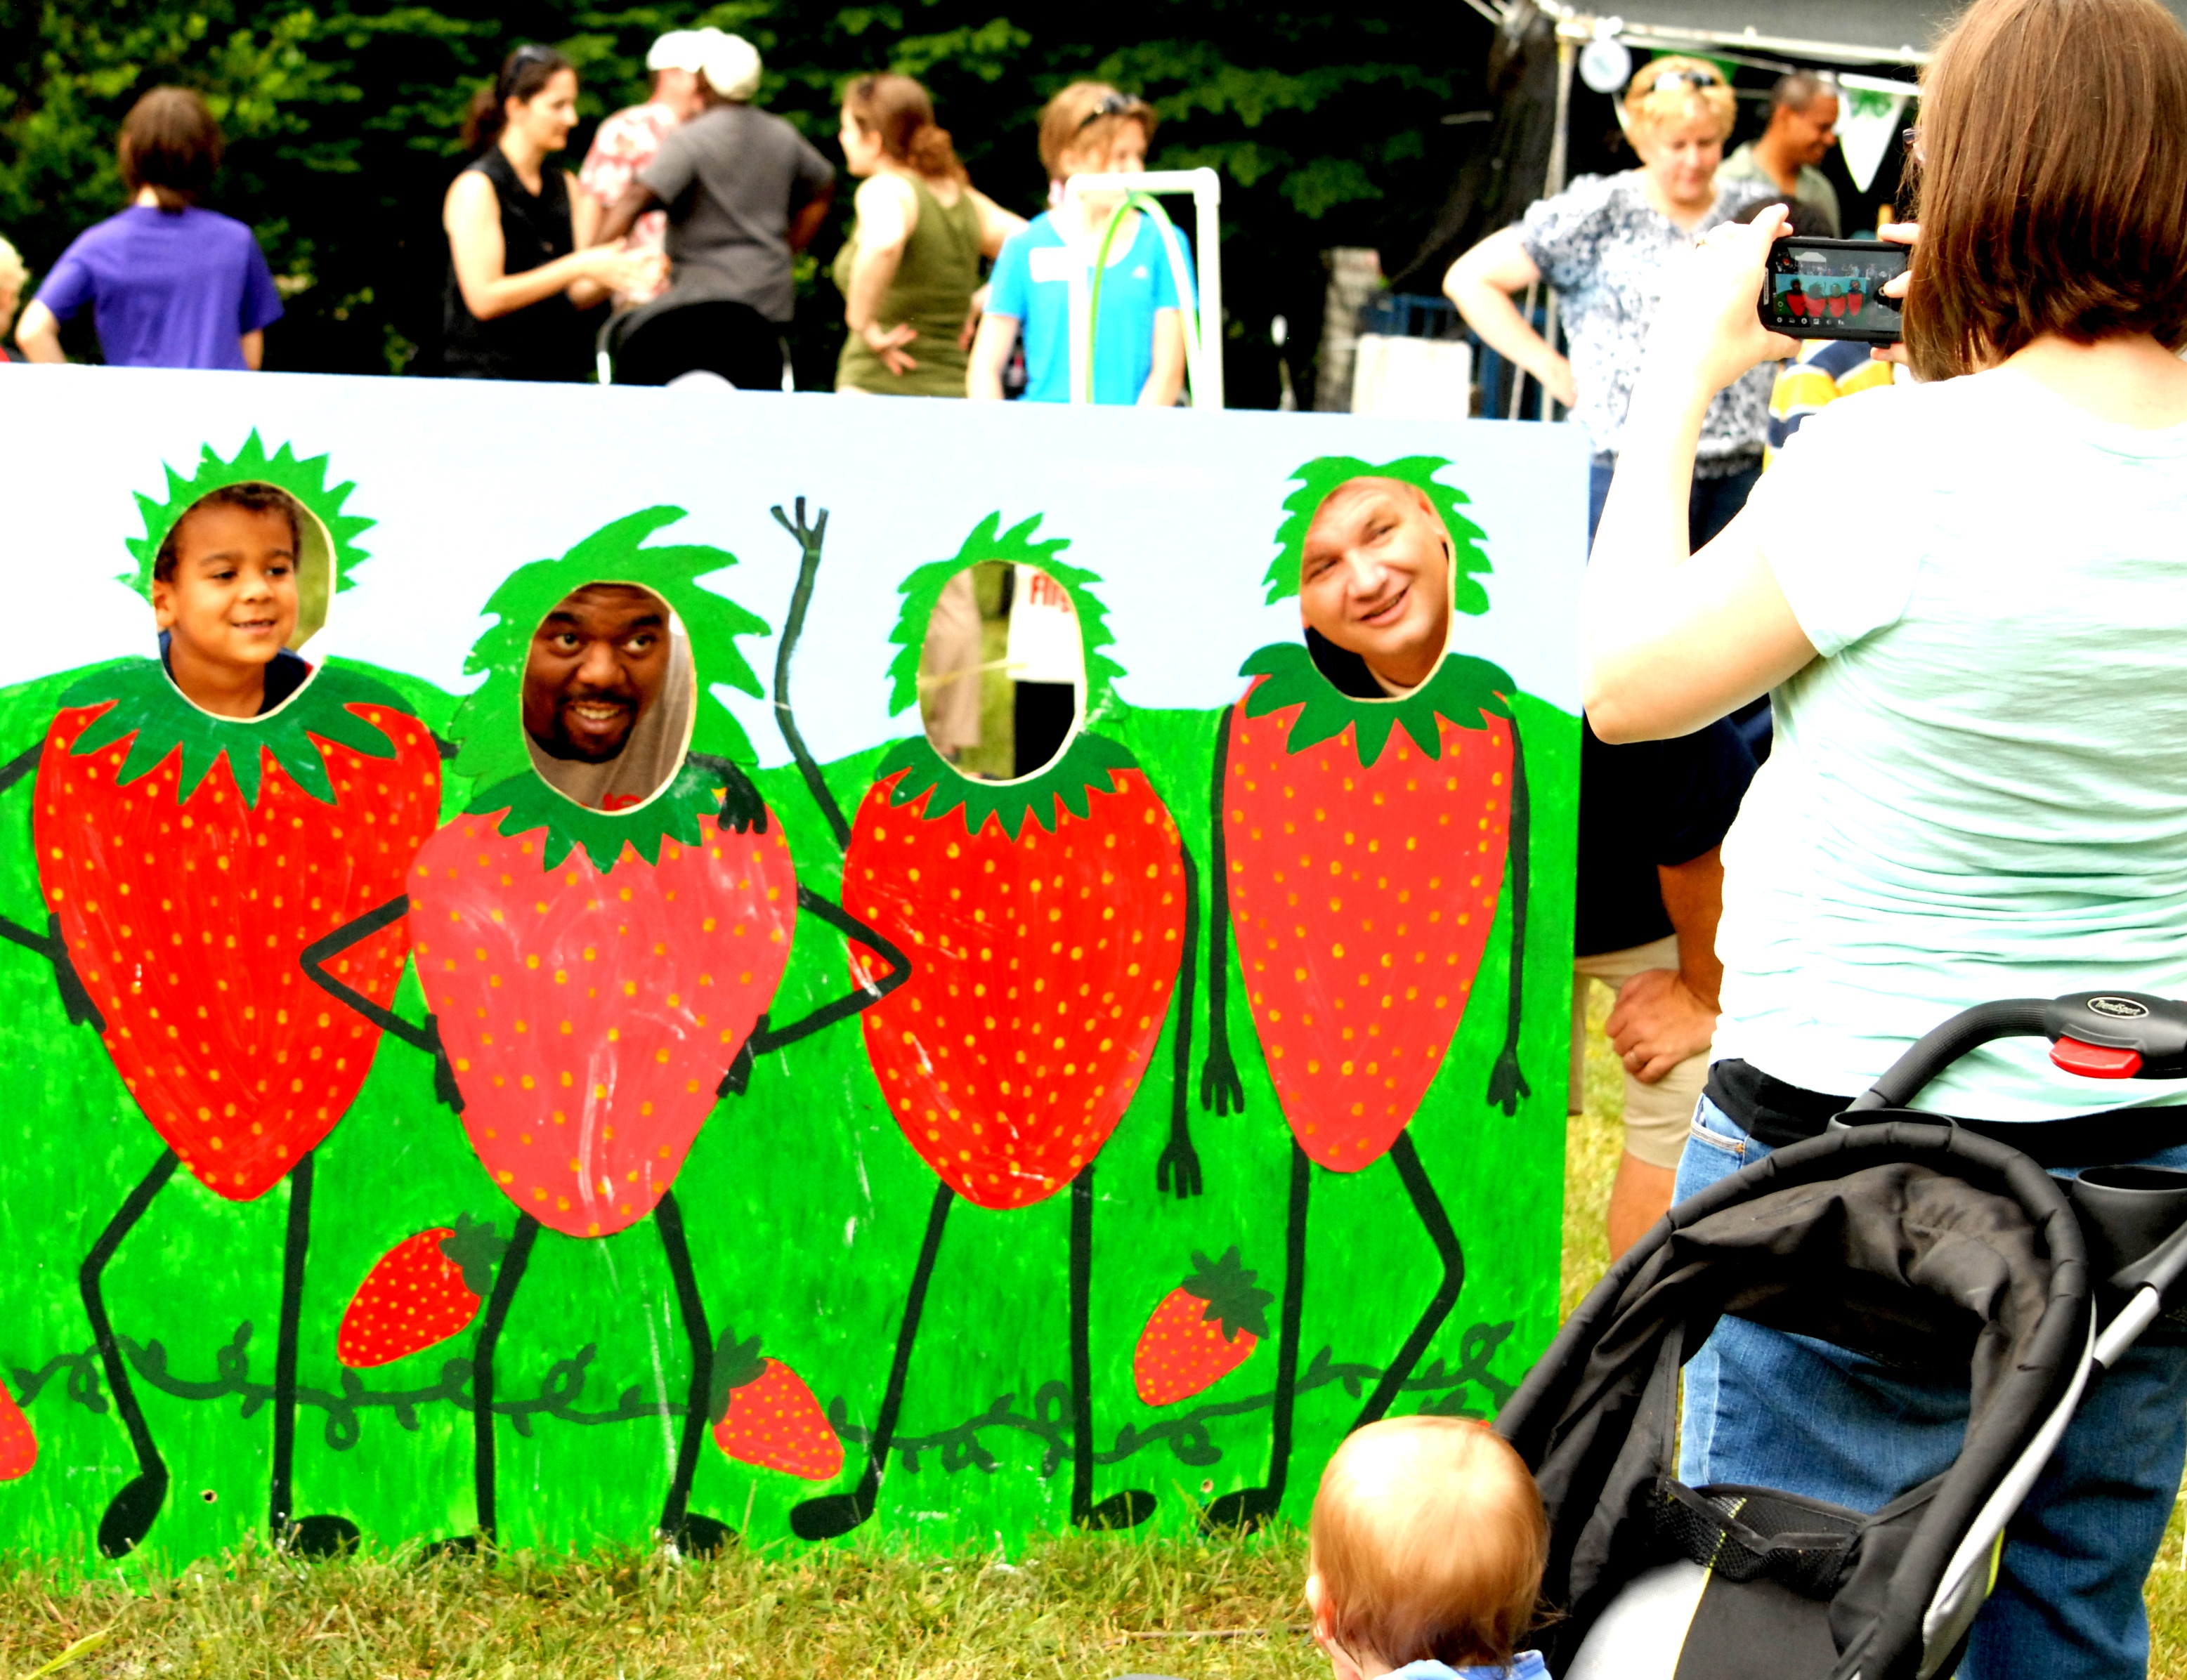 Kids and adults have a blast at festival